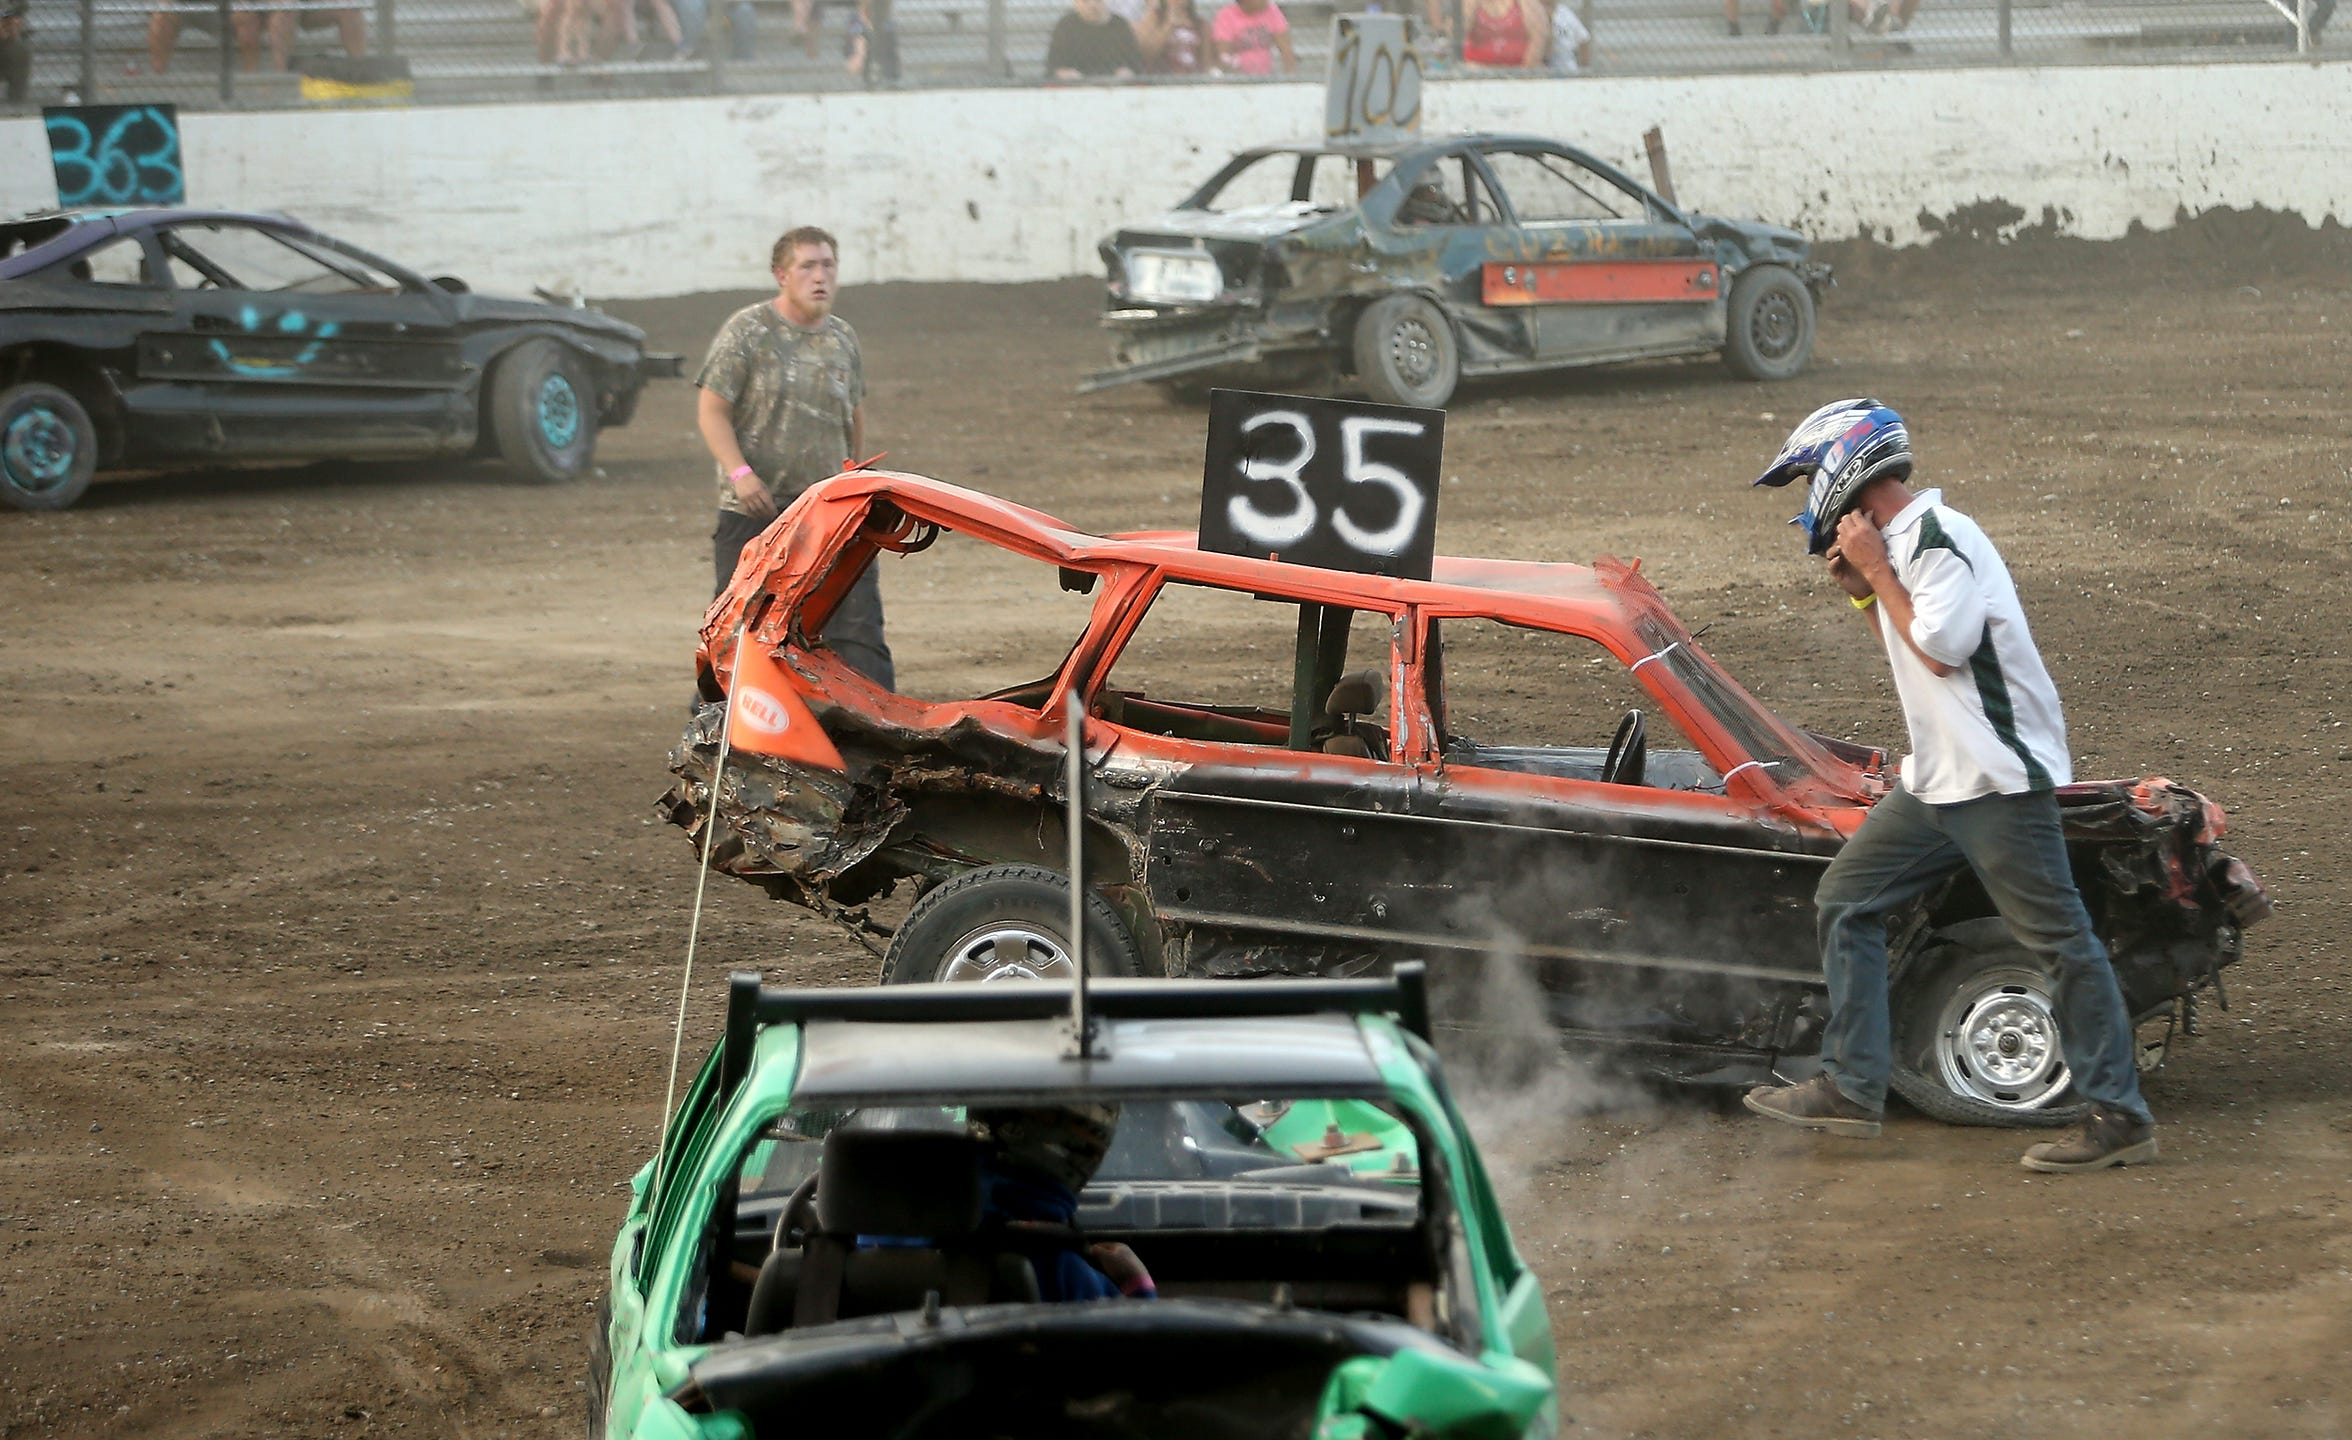 Driving in the Kitsap Destruction Derby carries some risks. Steve Morgan, in the No. 35 car, briefly lost consciousness after taking a hit during the finale of the July event.